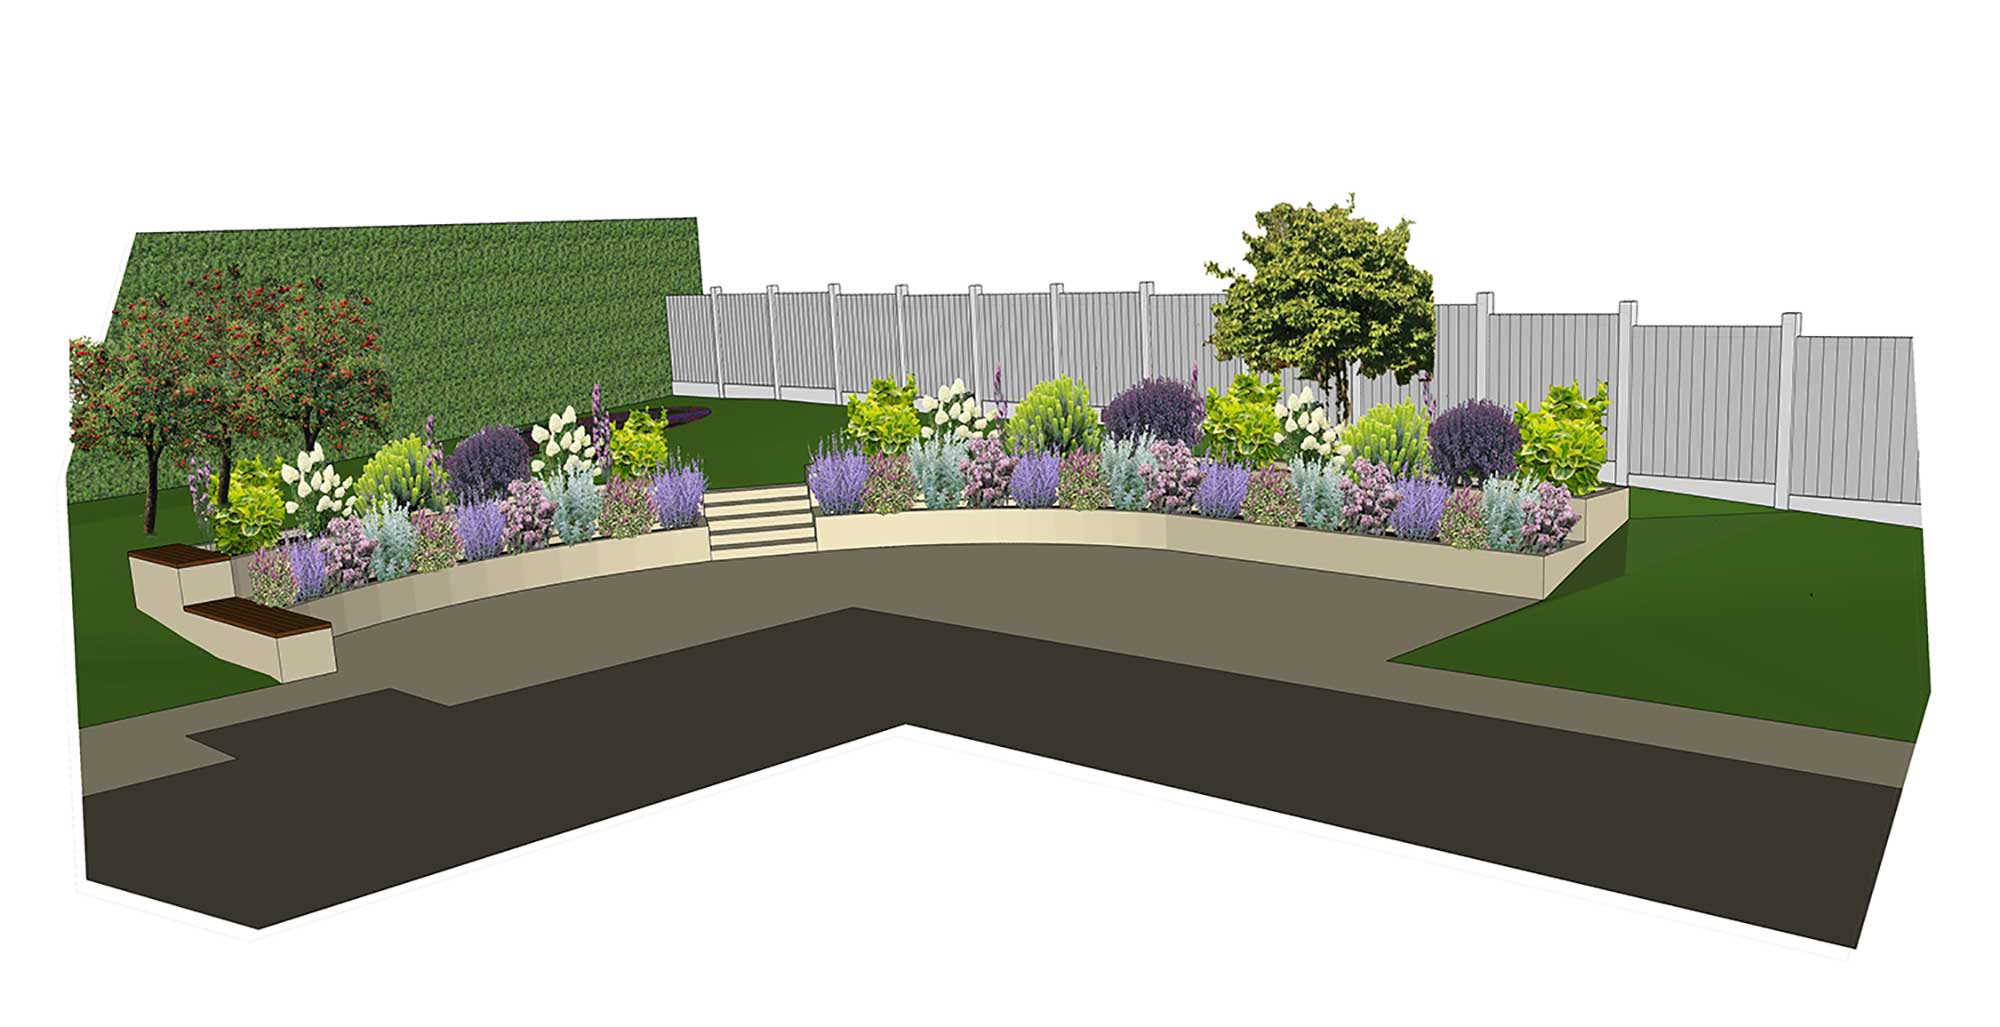 Rear garden design visualisation garden design layout for Garden design plans uk